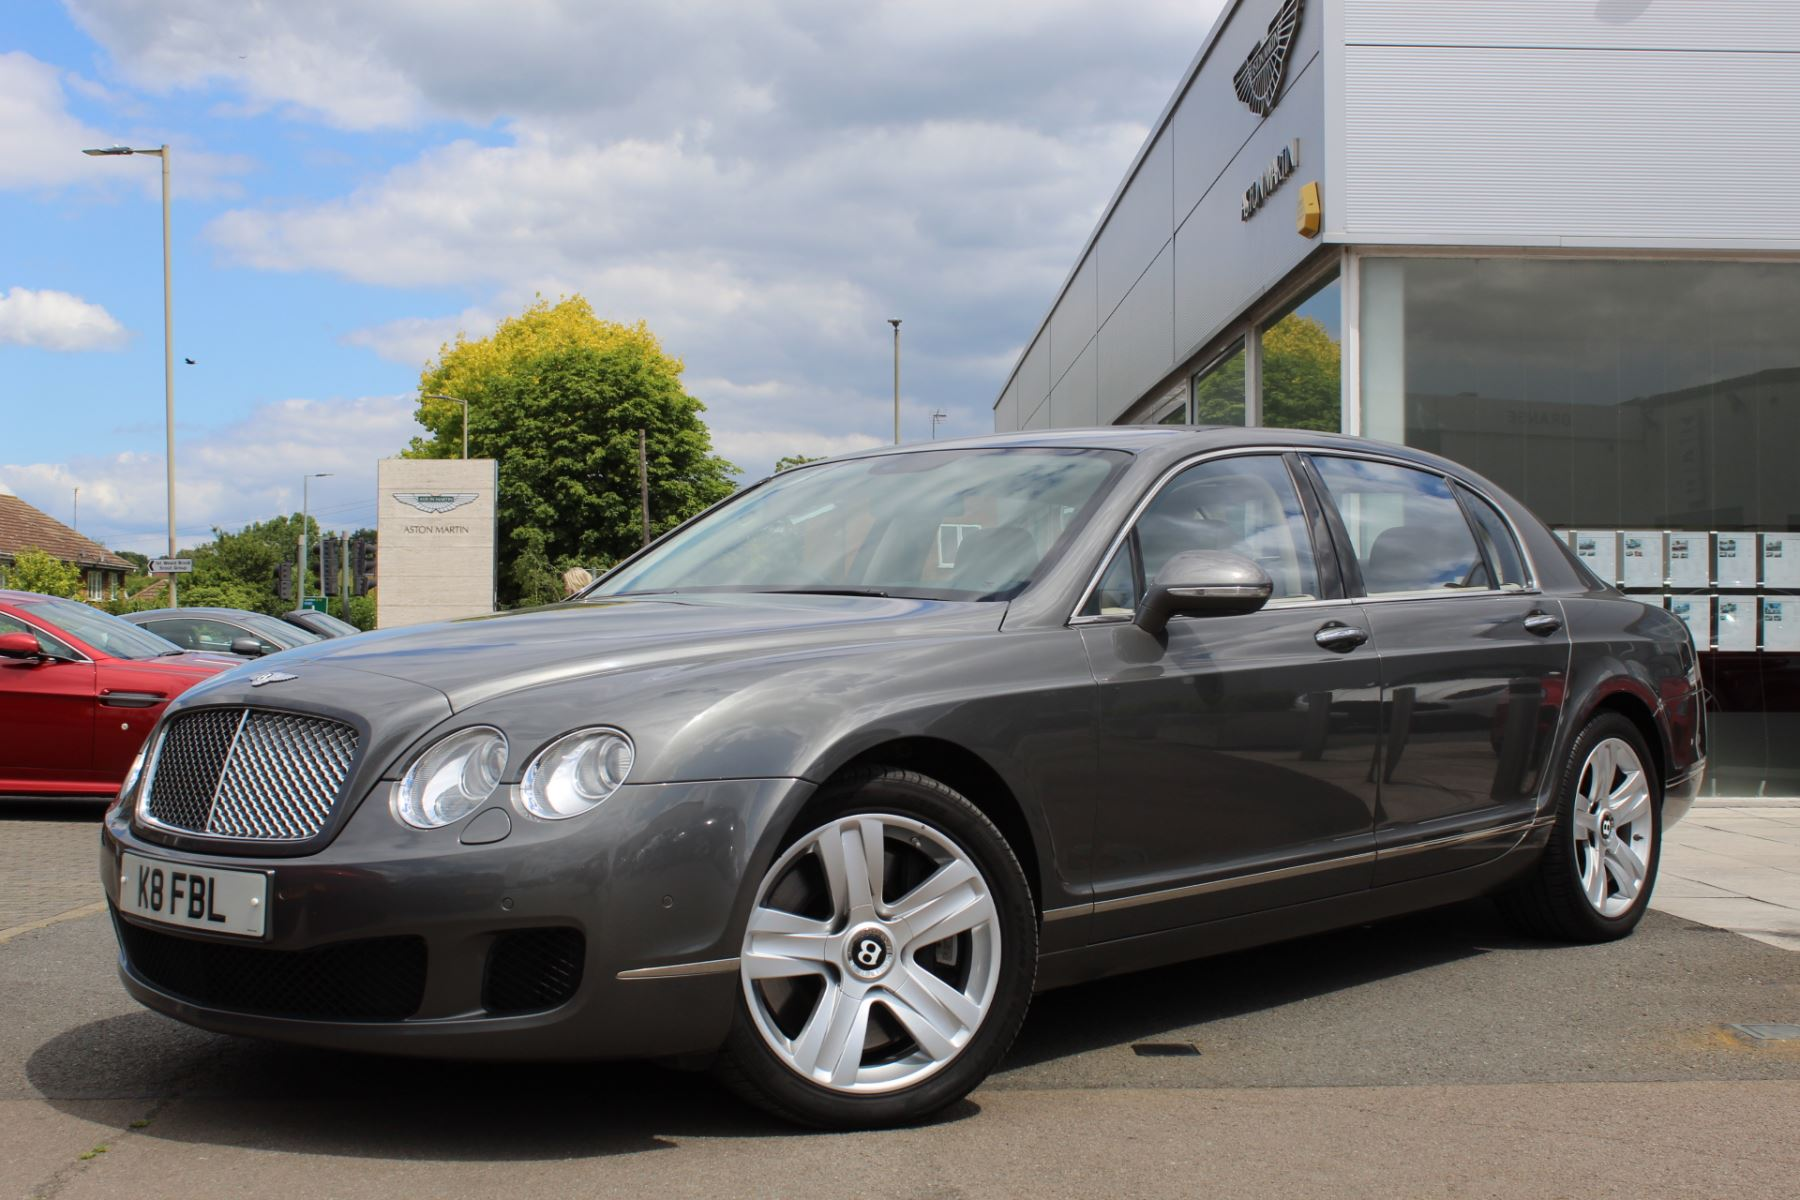 Bentley Continental Flying Spur 6.0 W12 Automatic 4 door Saloon (2012) image